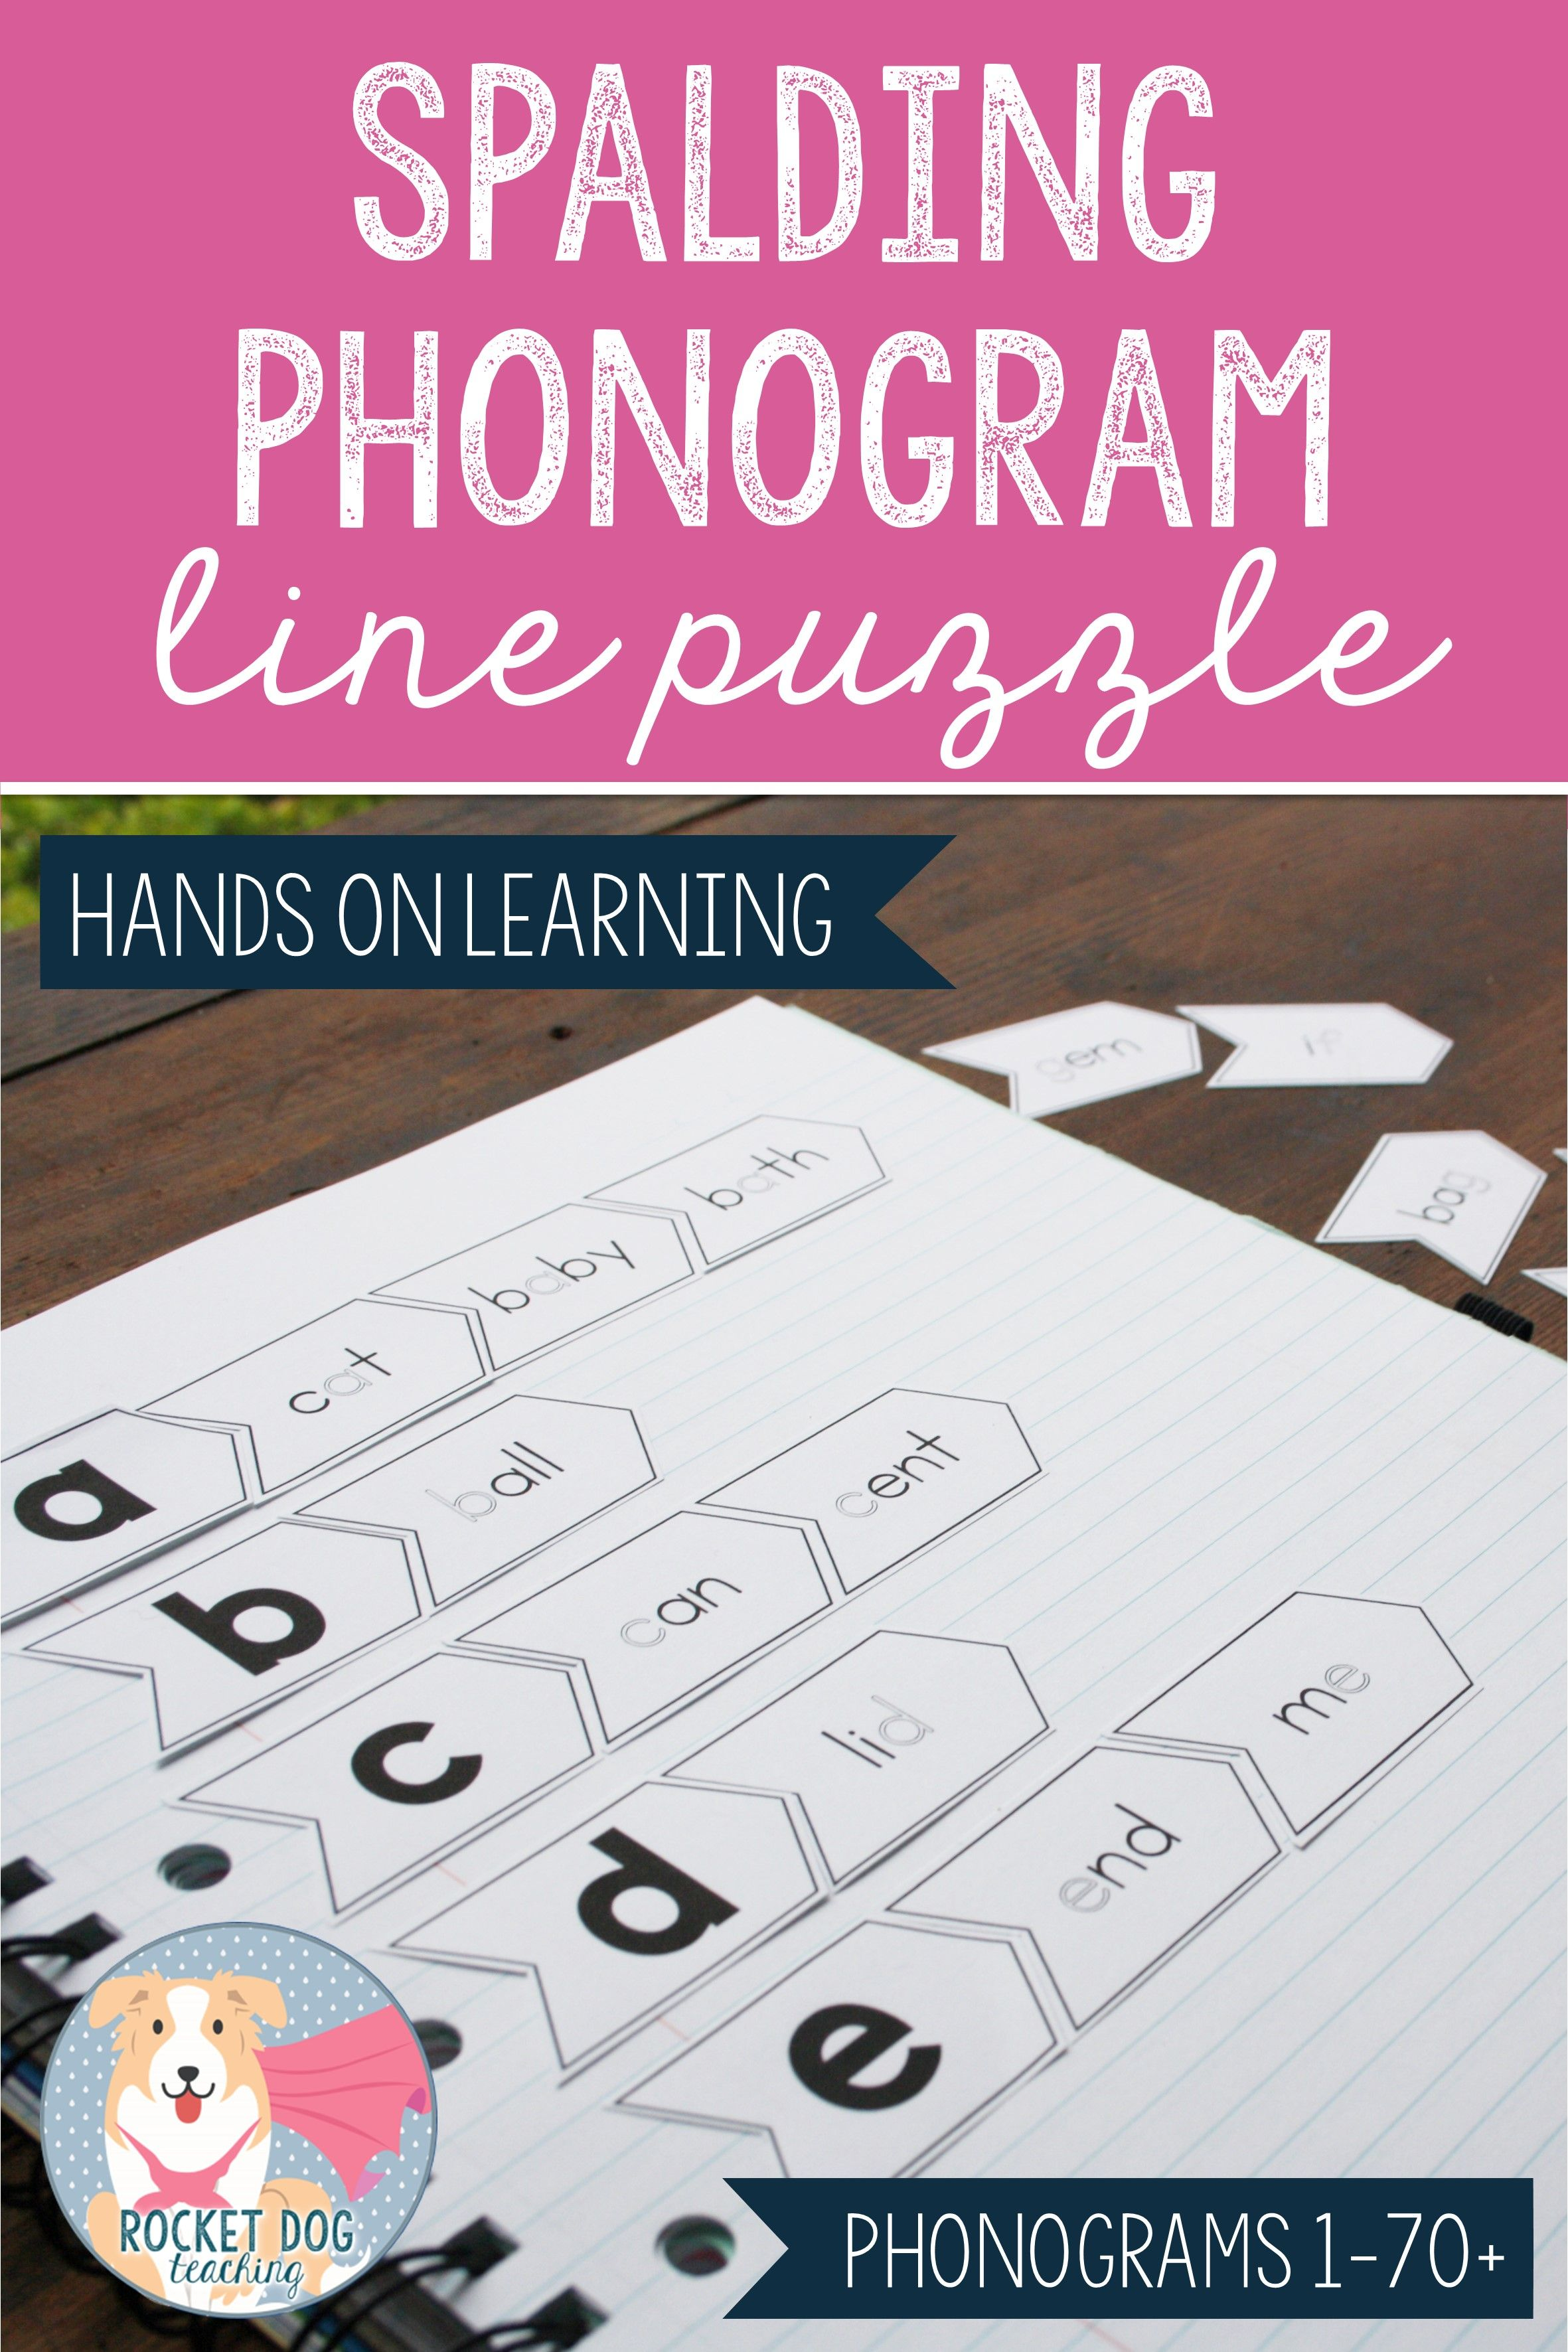 This Spalding Phonogram Line Puzzle Can Be Used In A Range Of Ways Print It Full Size To Create A Puz Spelling Activities Literacy Center Activity Phonograms [ 3543 x 2362 Pixel ]